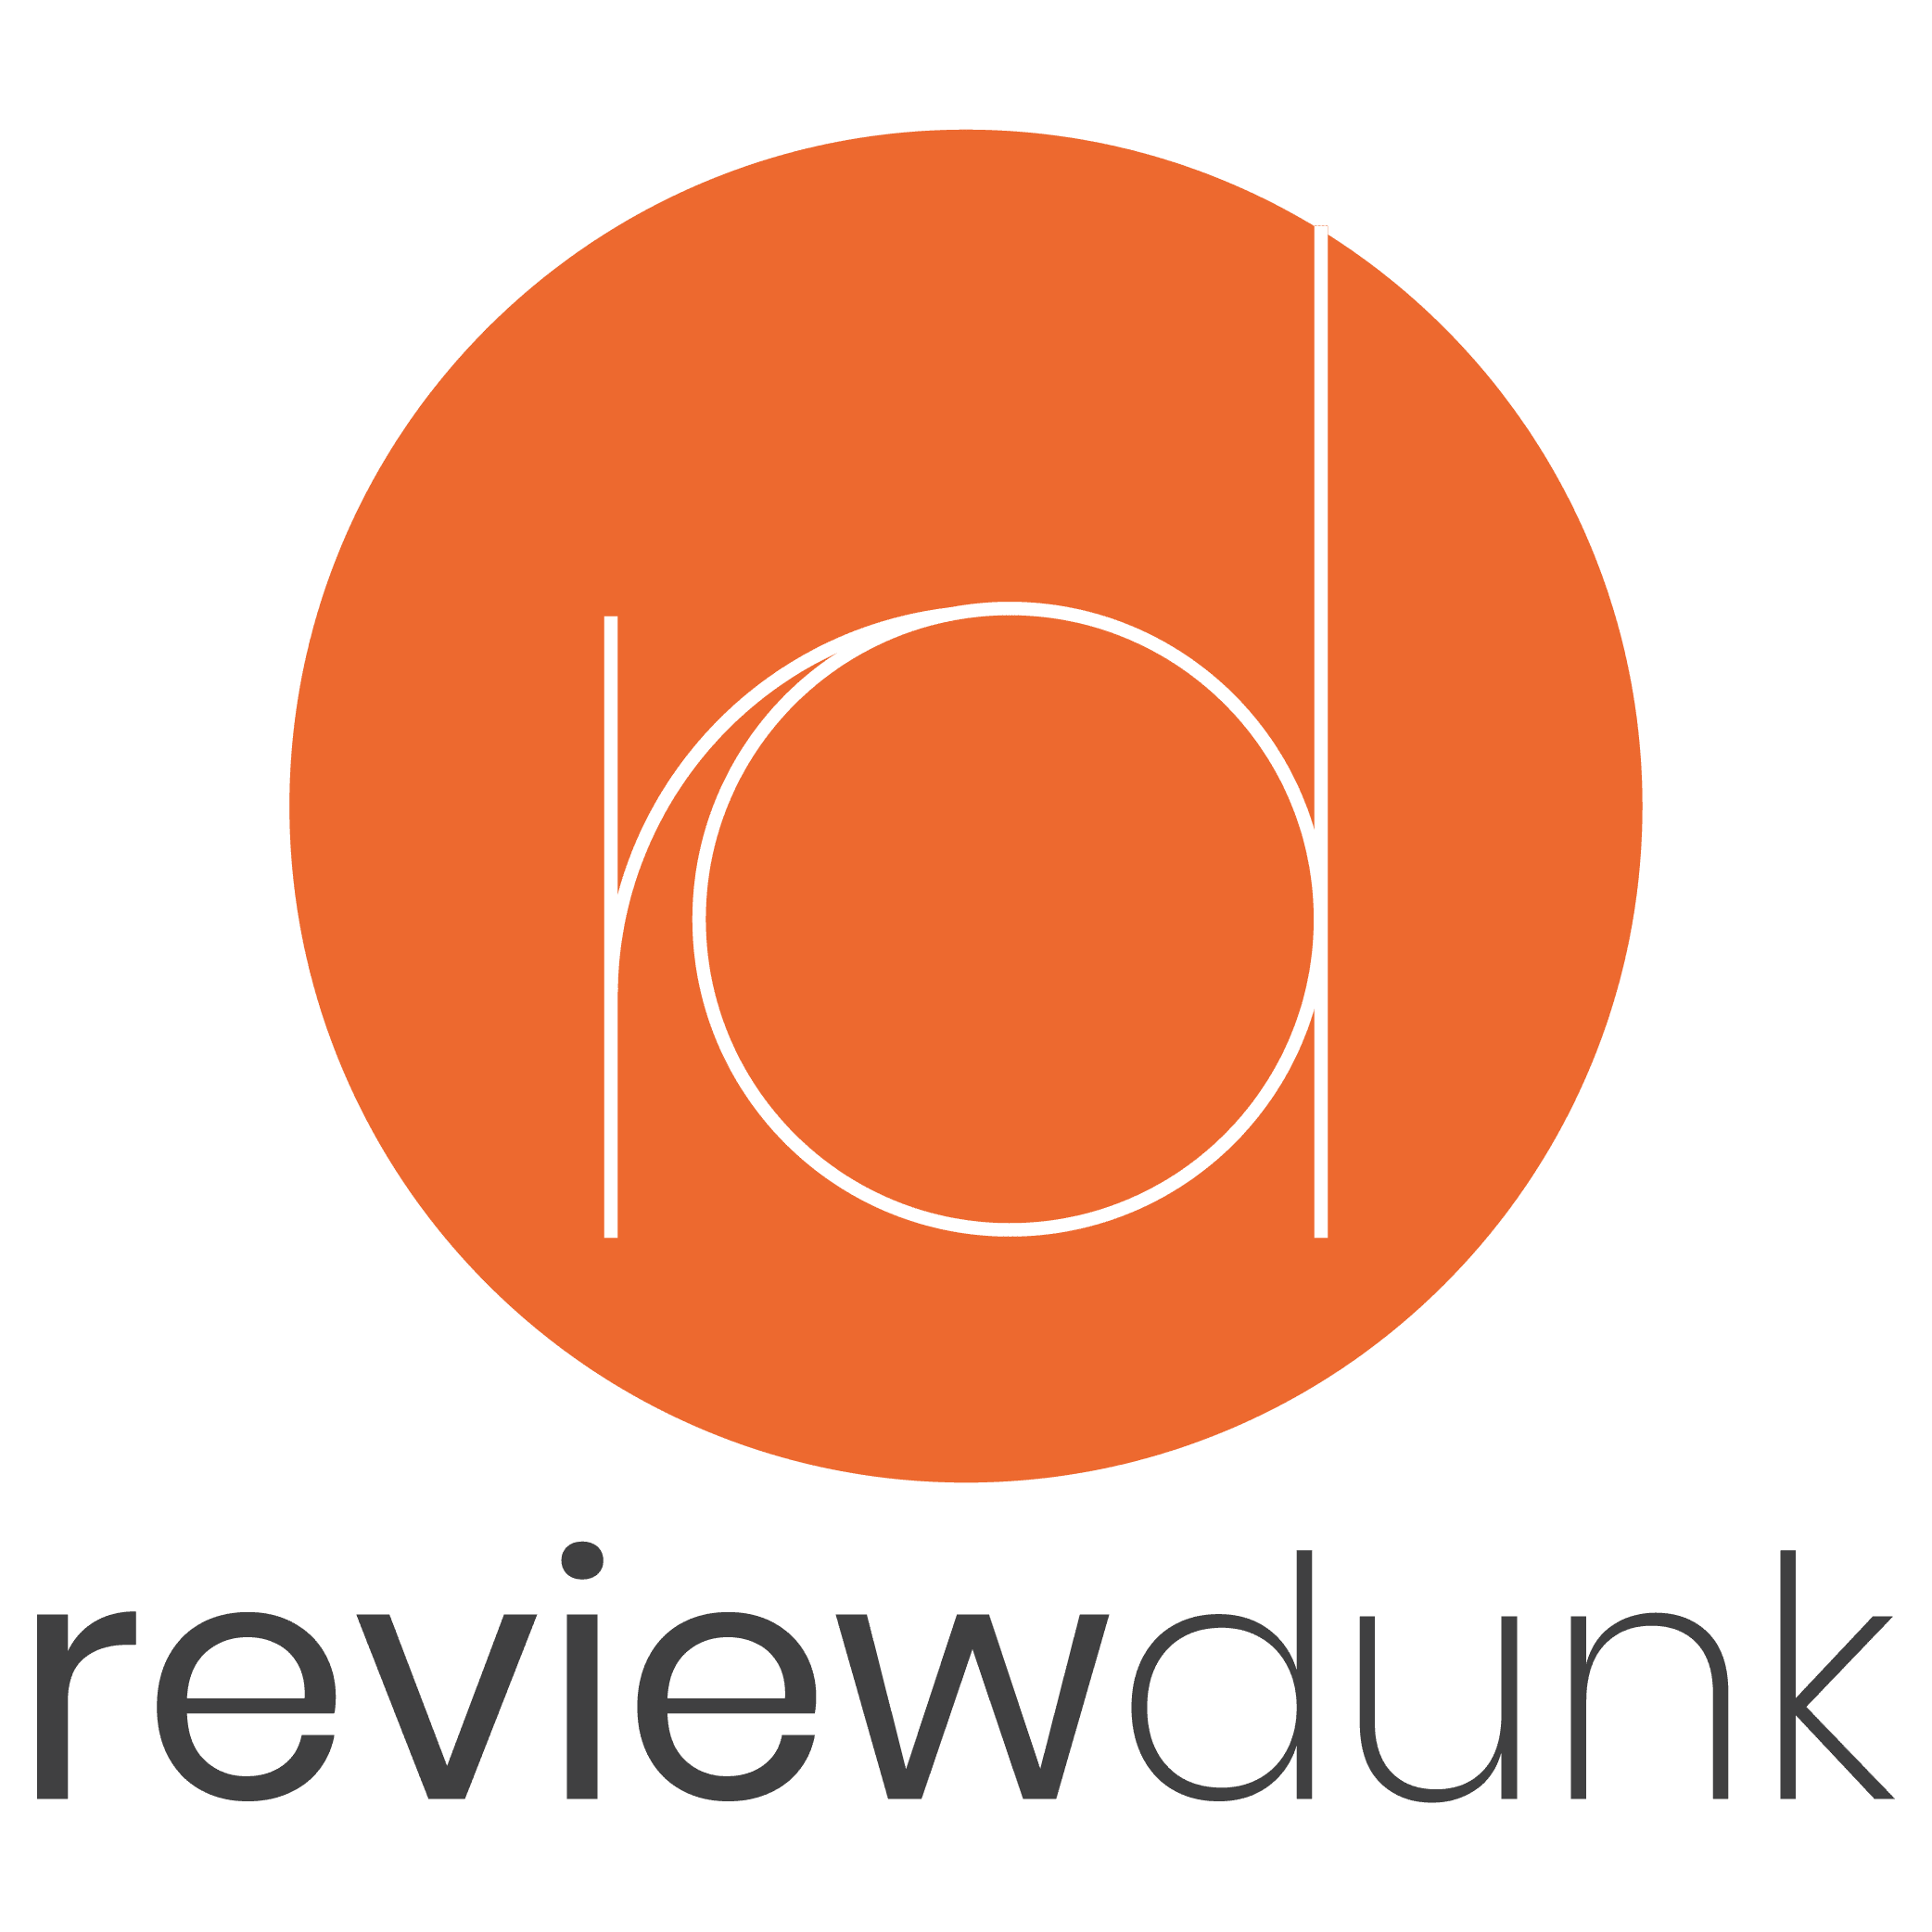 Review Dunk